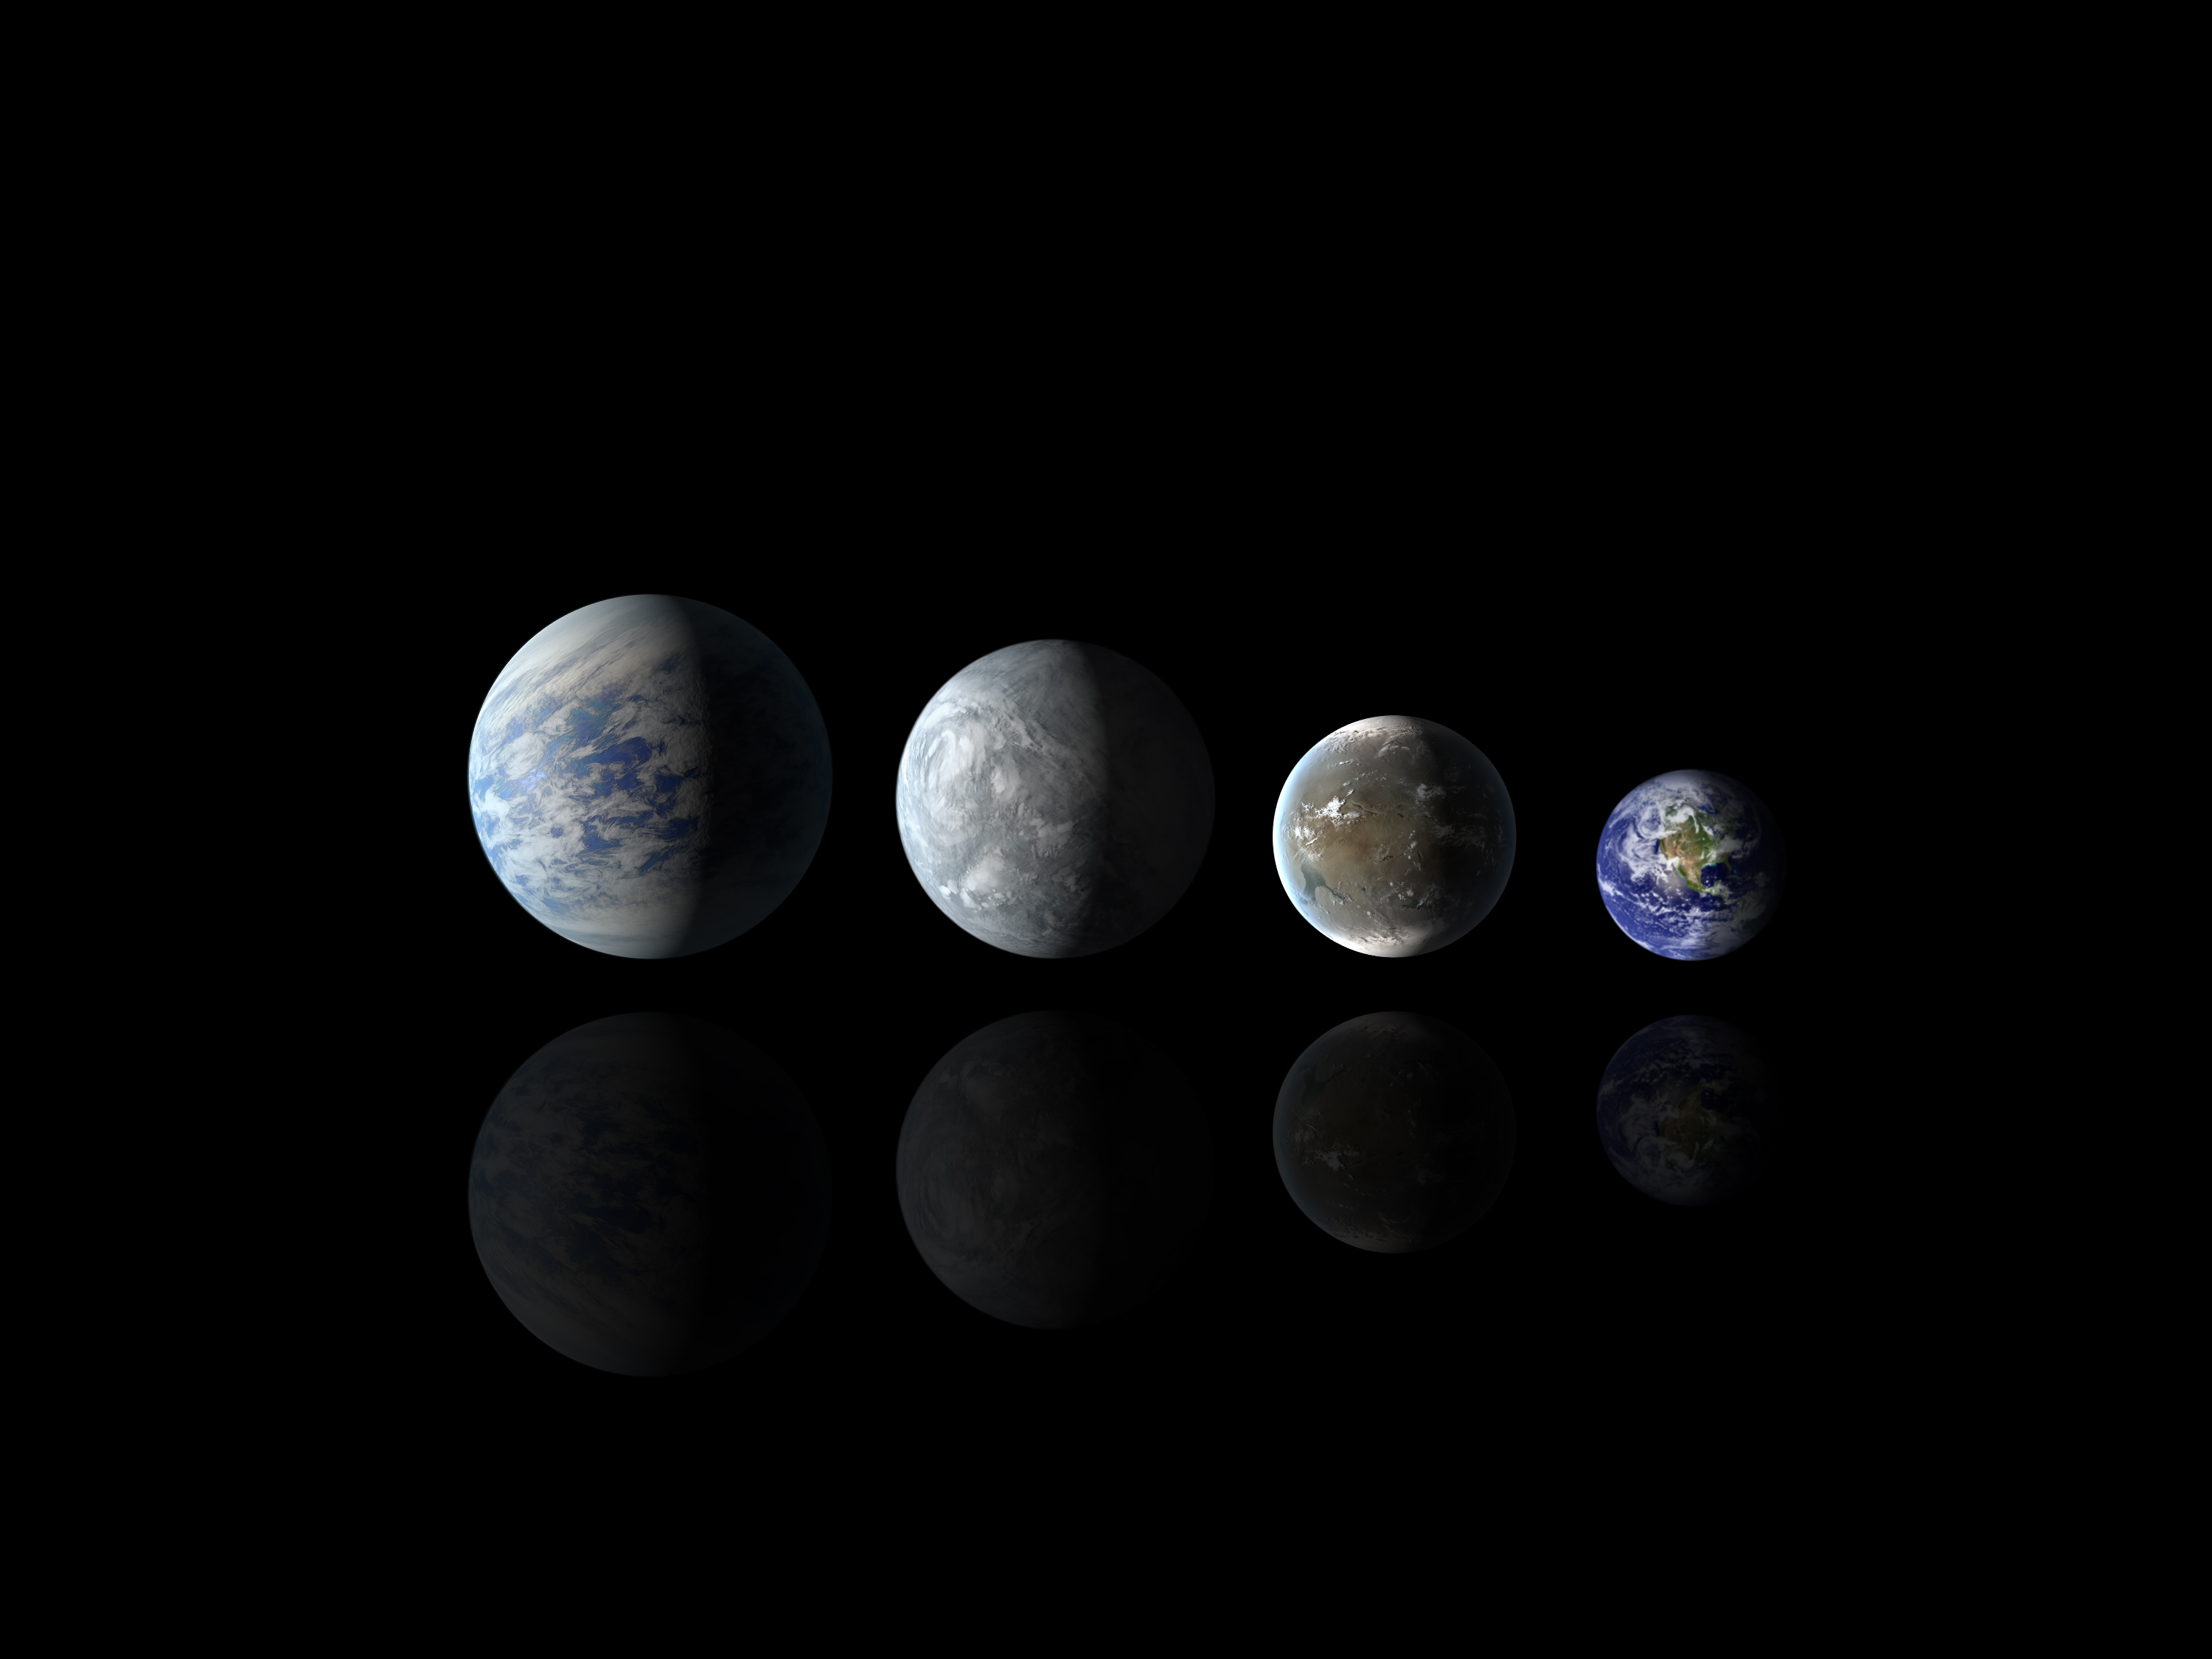 _images/Relative_sizes_of_all_of_the_habitable-zone_planets_discovered_to_date_alongside_Earth.jpg